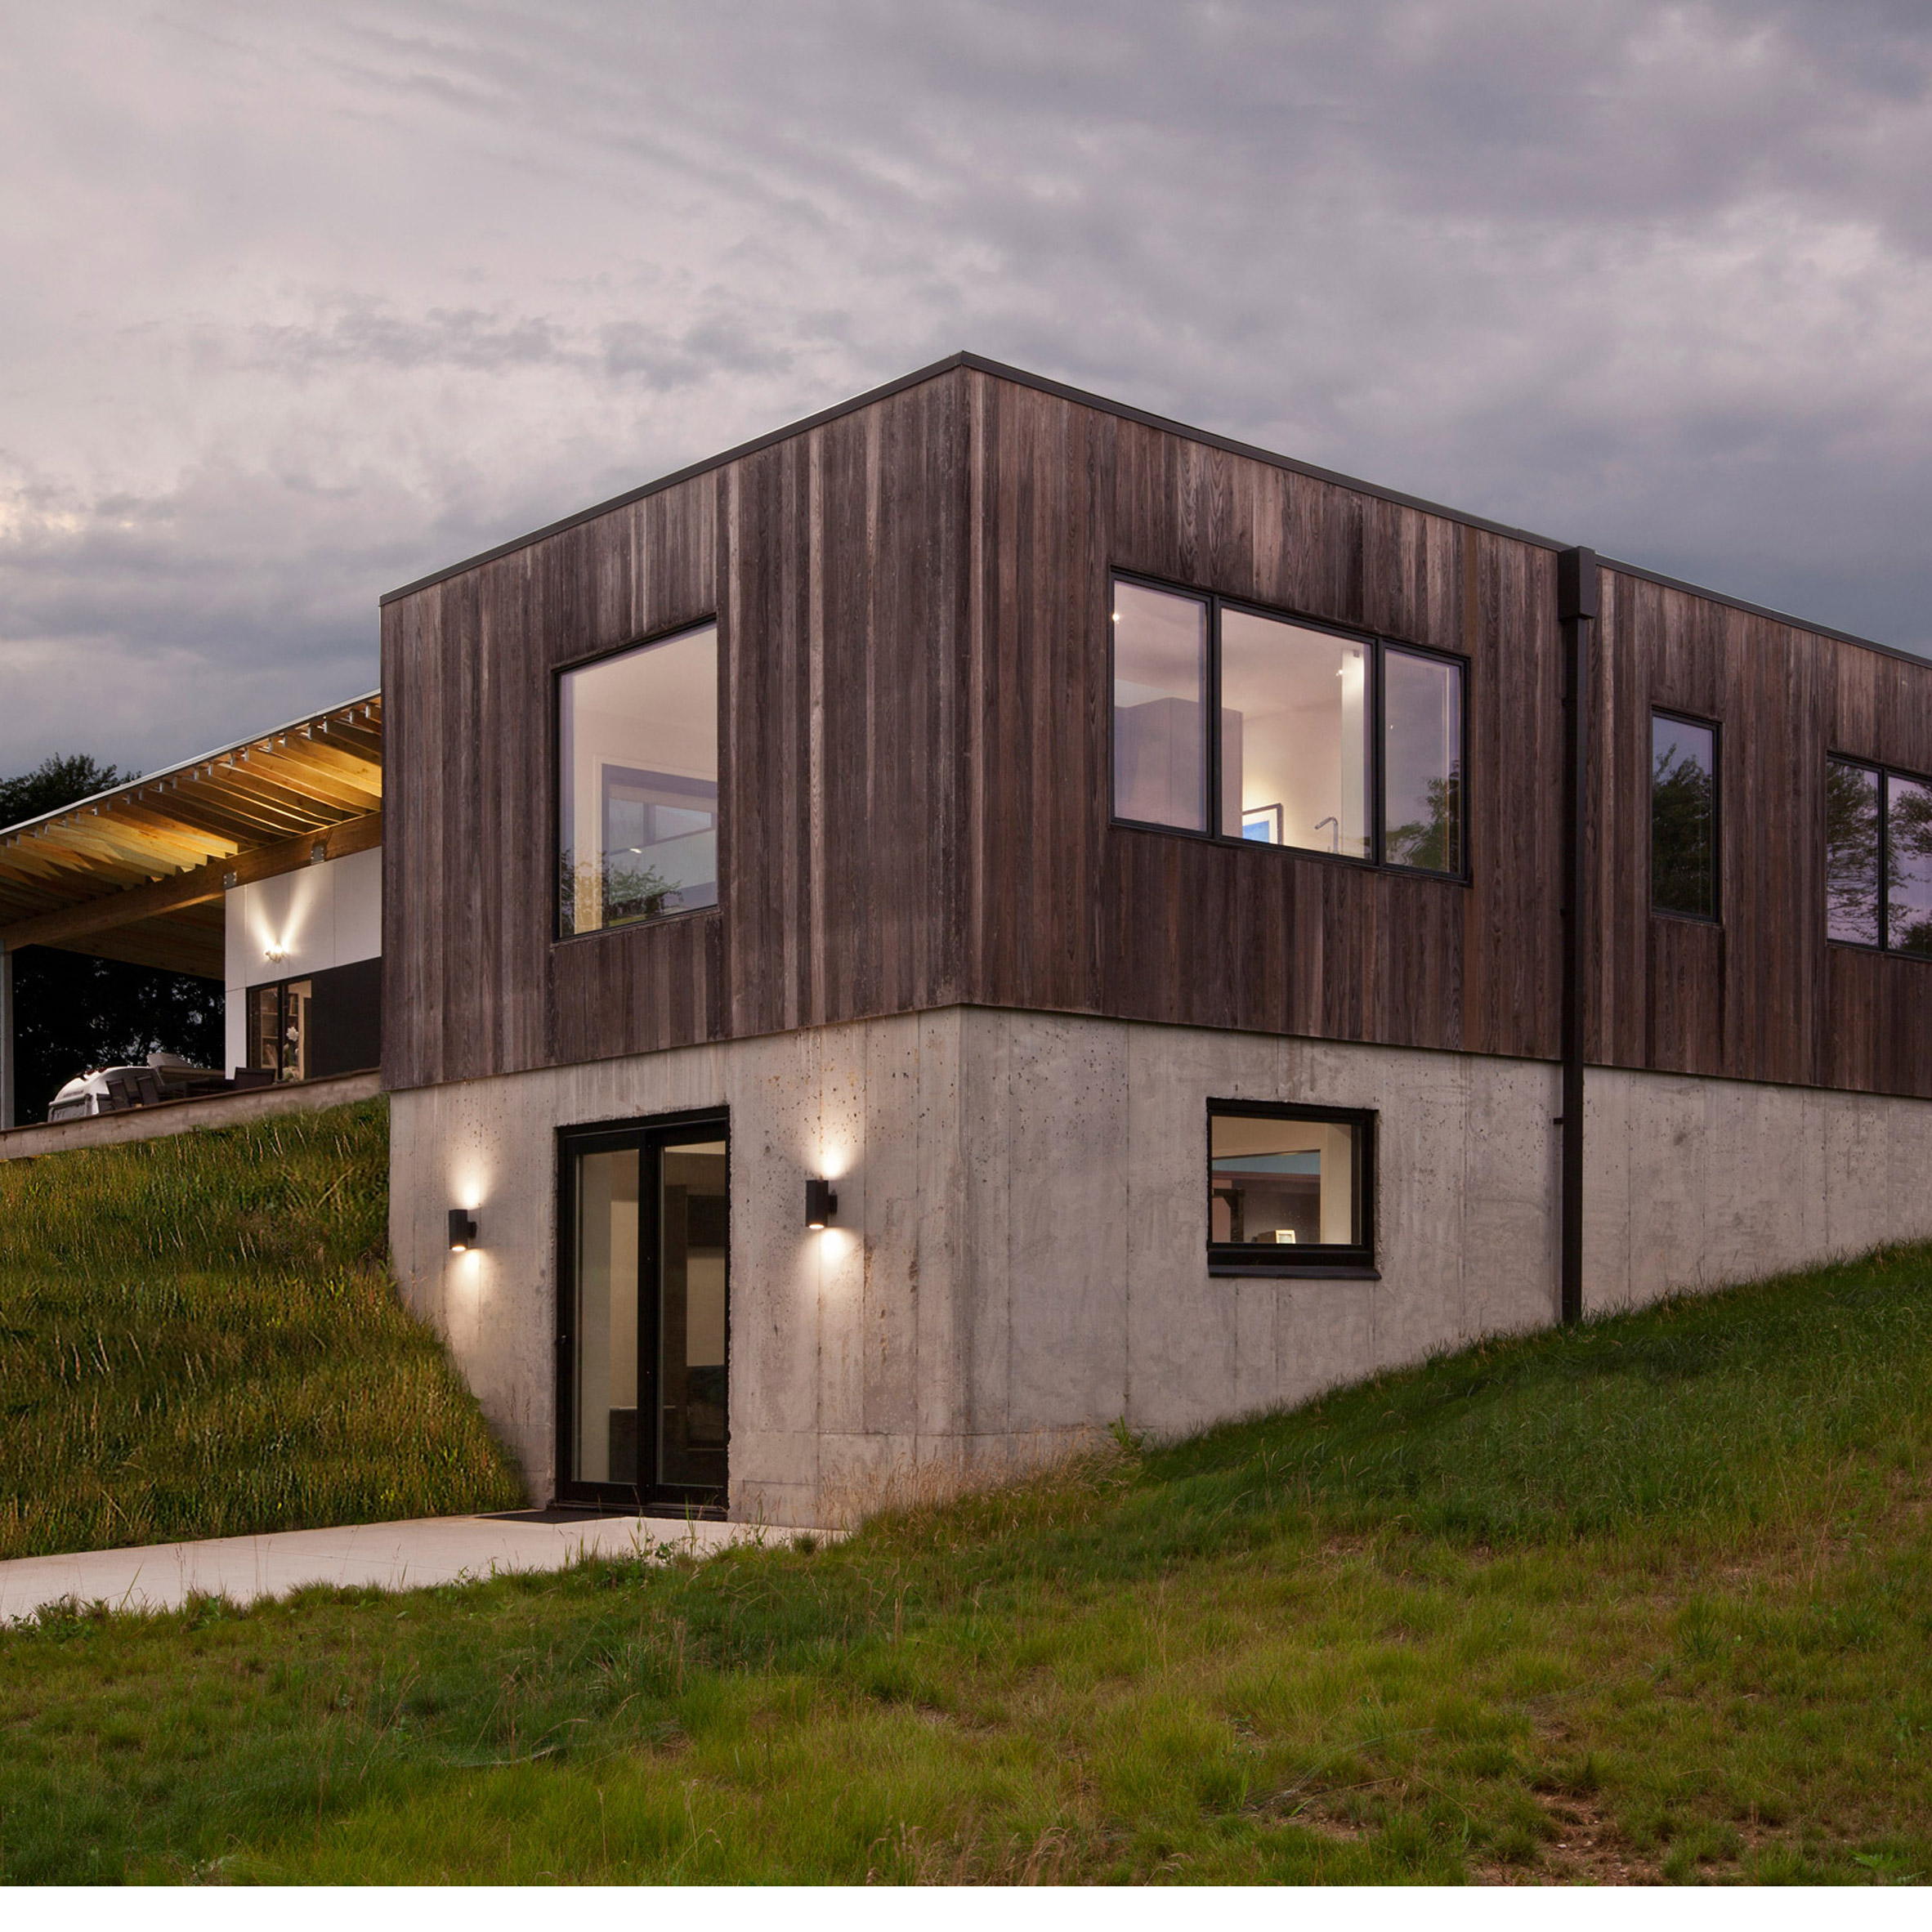 Haus wraps low lying Indiana residence in thermally treated ash